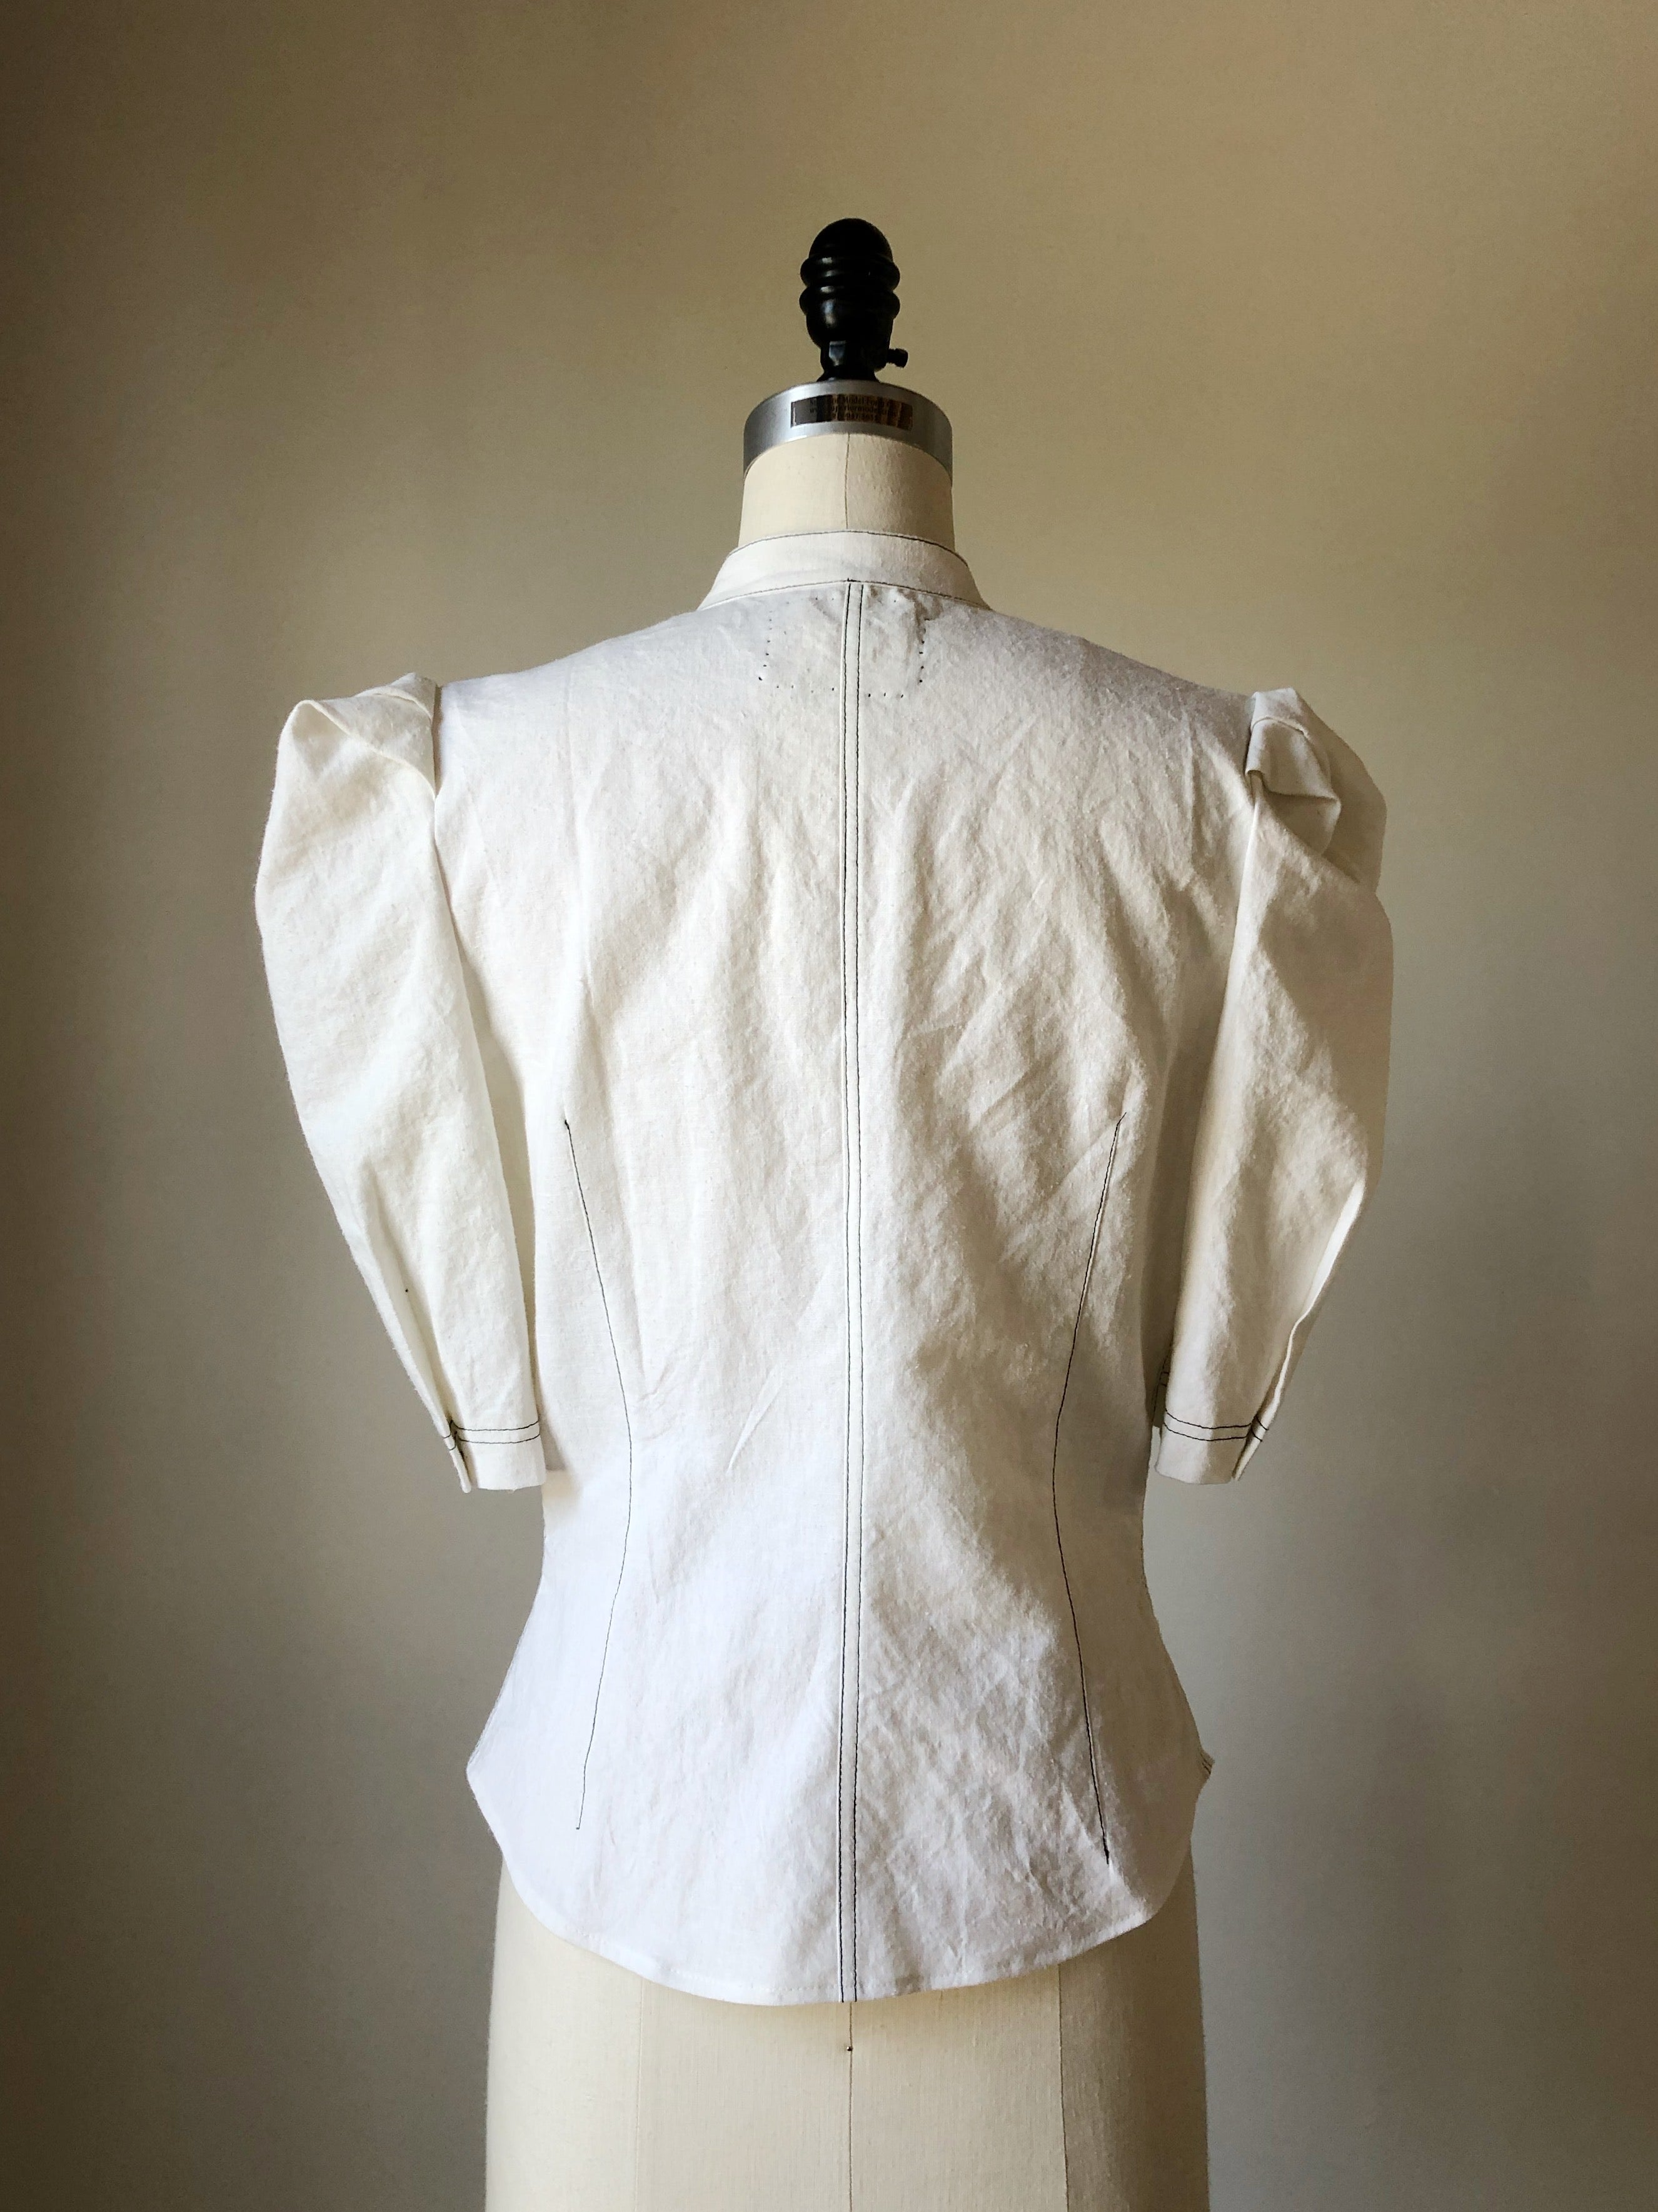 Lillian work shirt in white